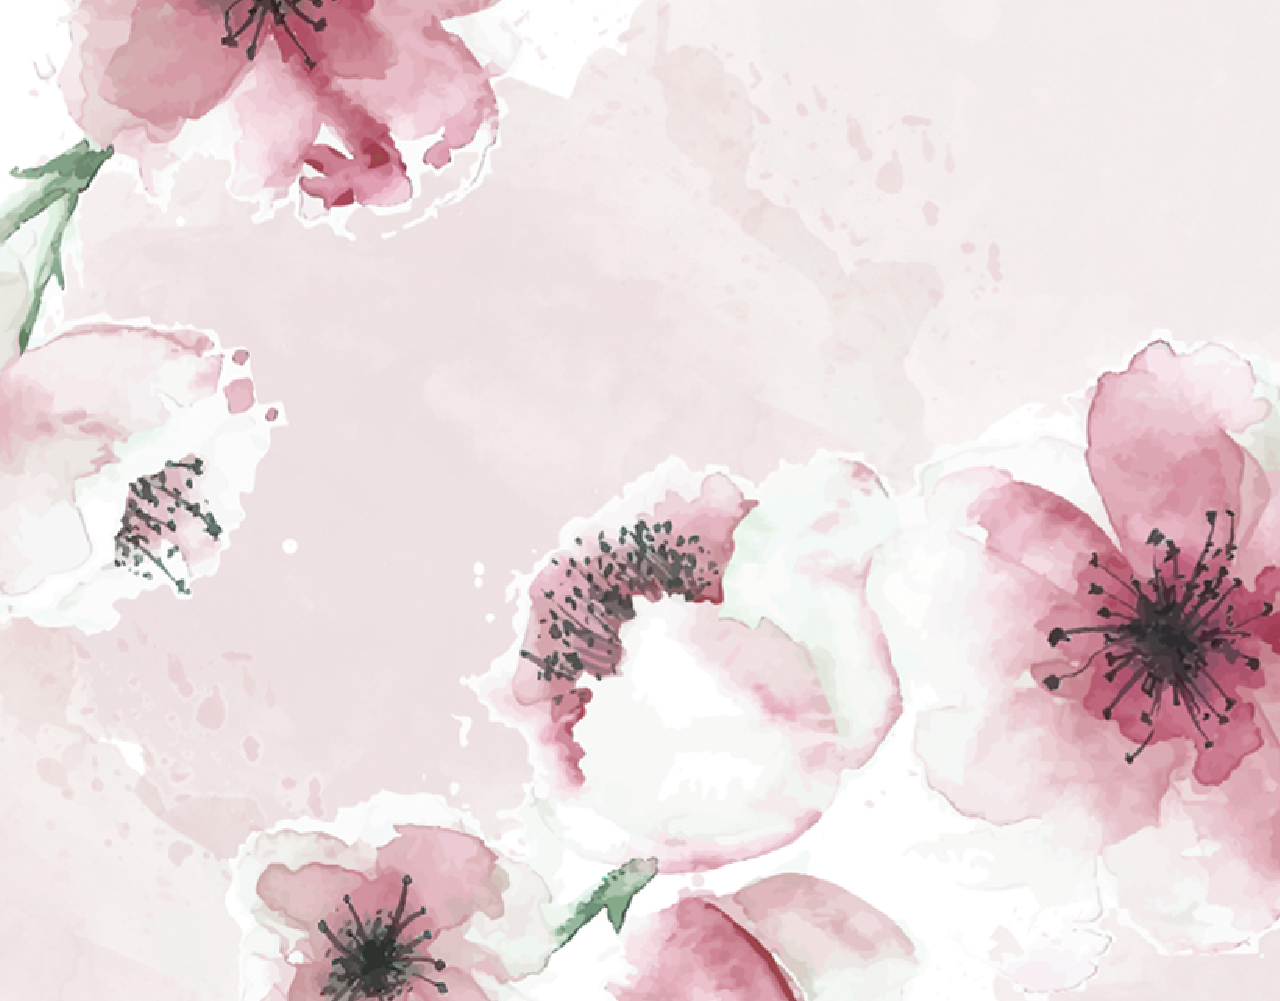 WebNew_Floral 01